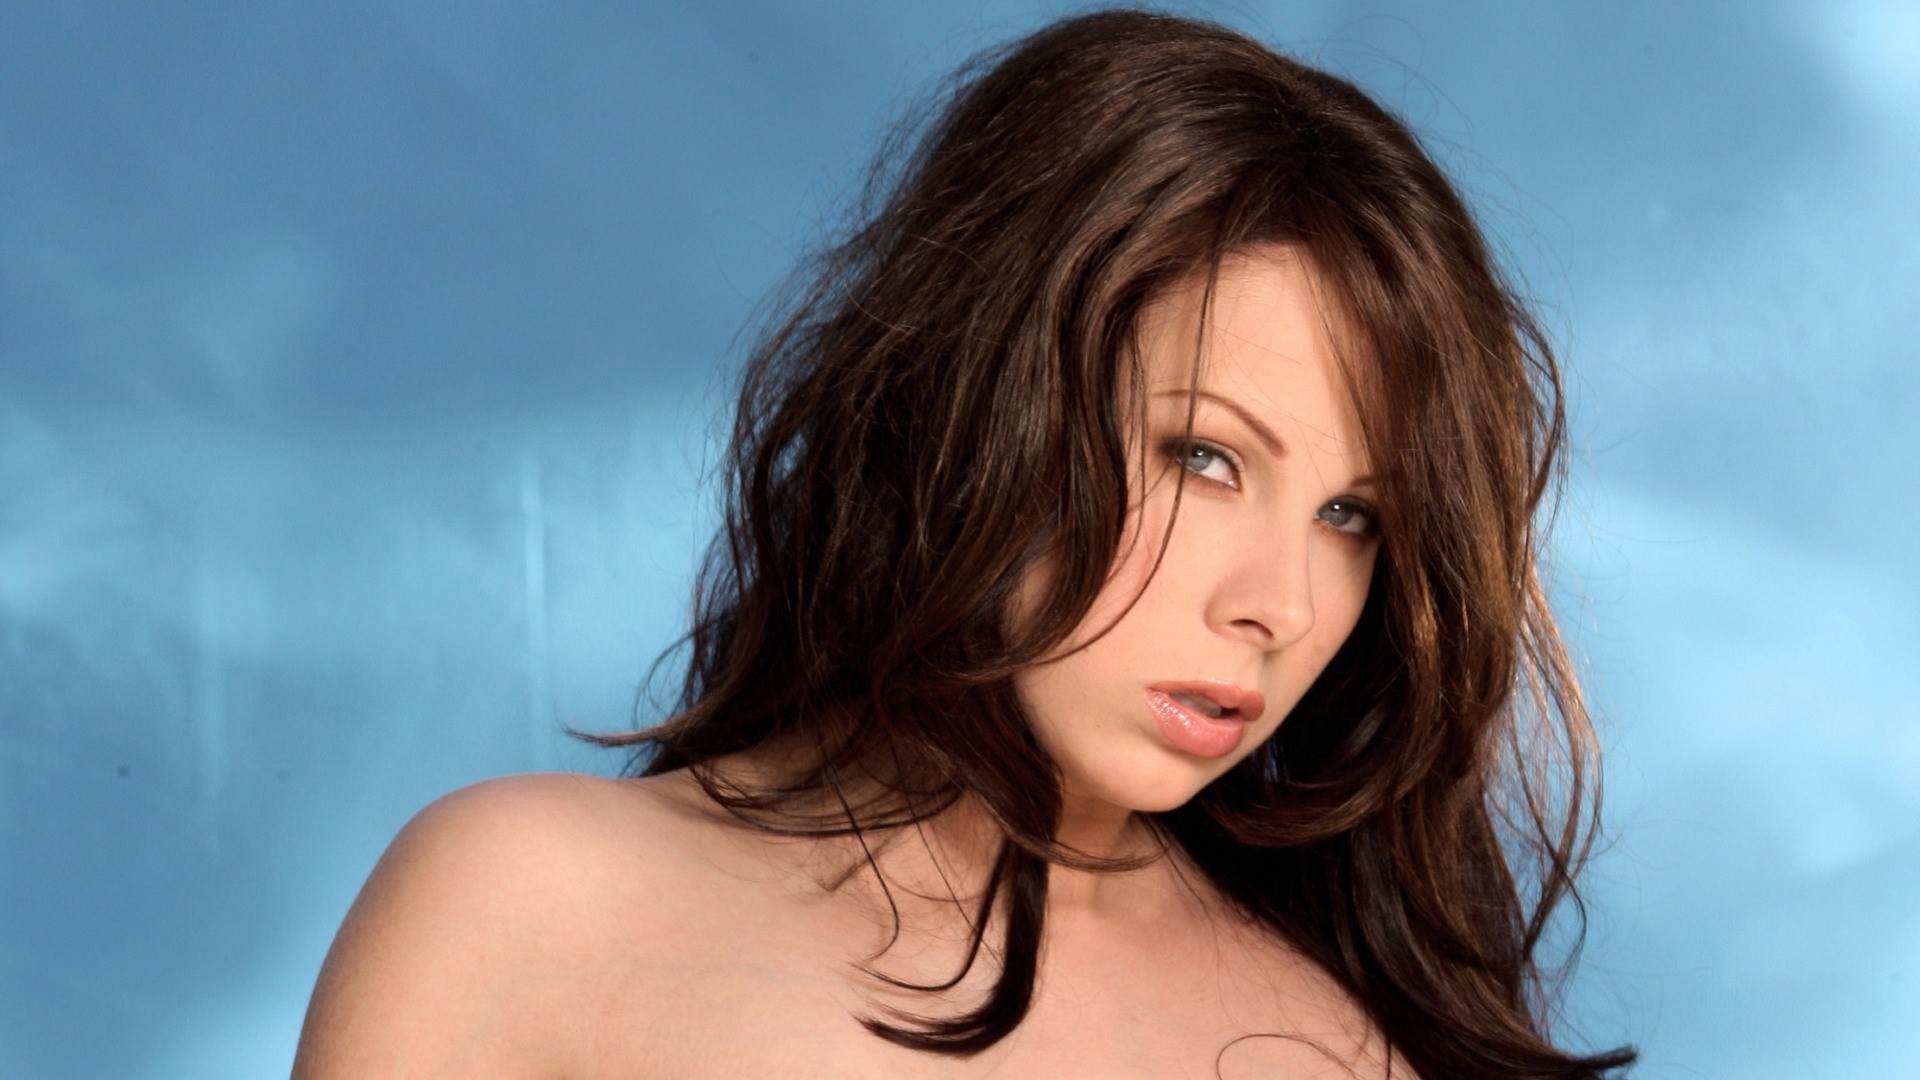 Gianna Michaels Wallpapers